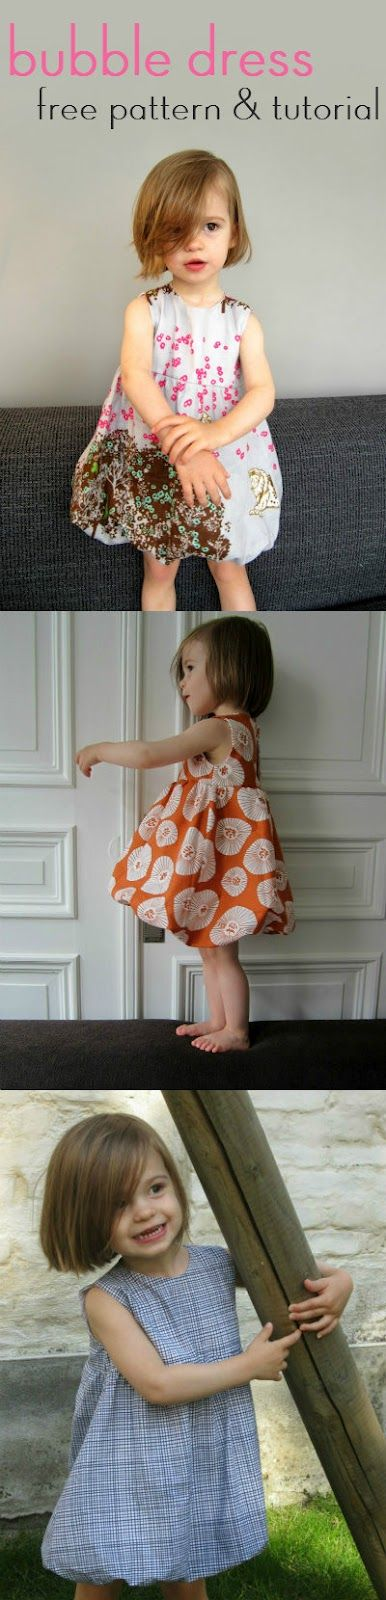 Bubble Dress: Free Pattern & Tutorial